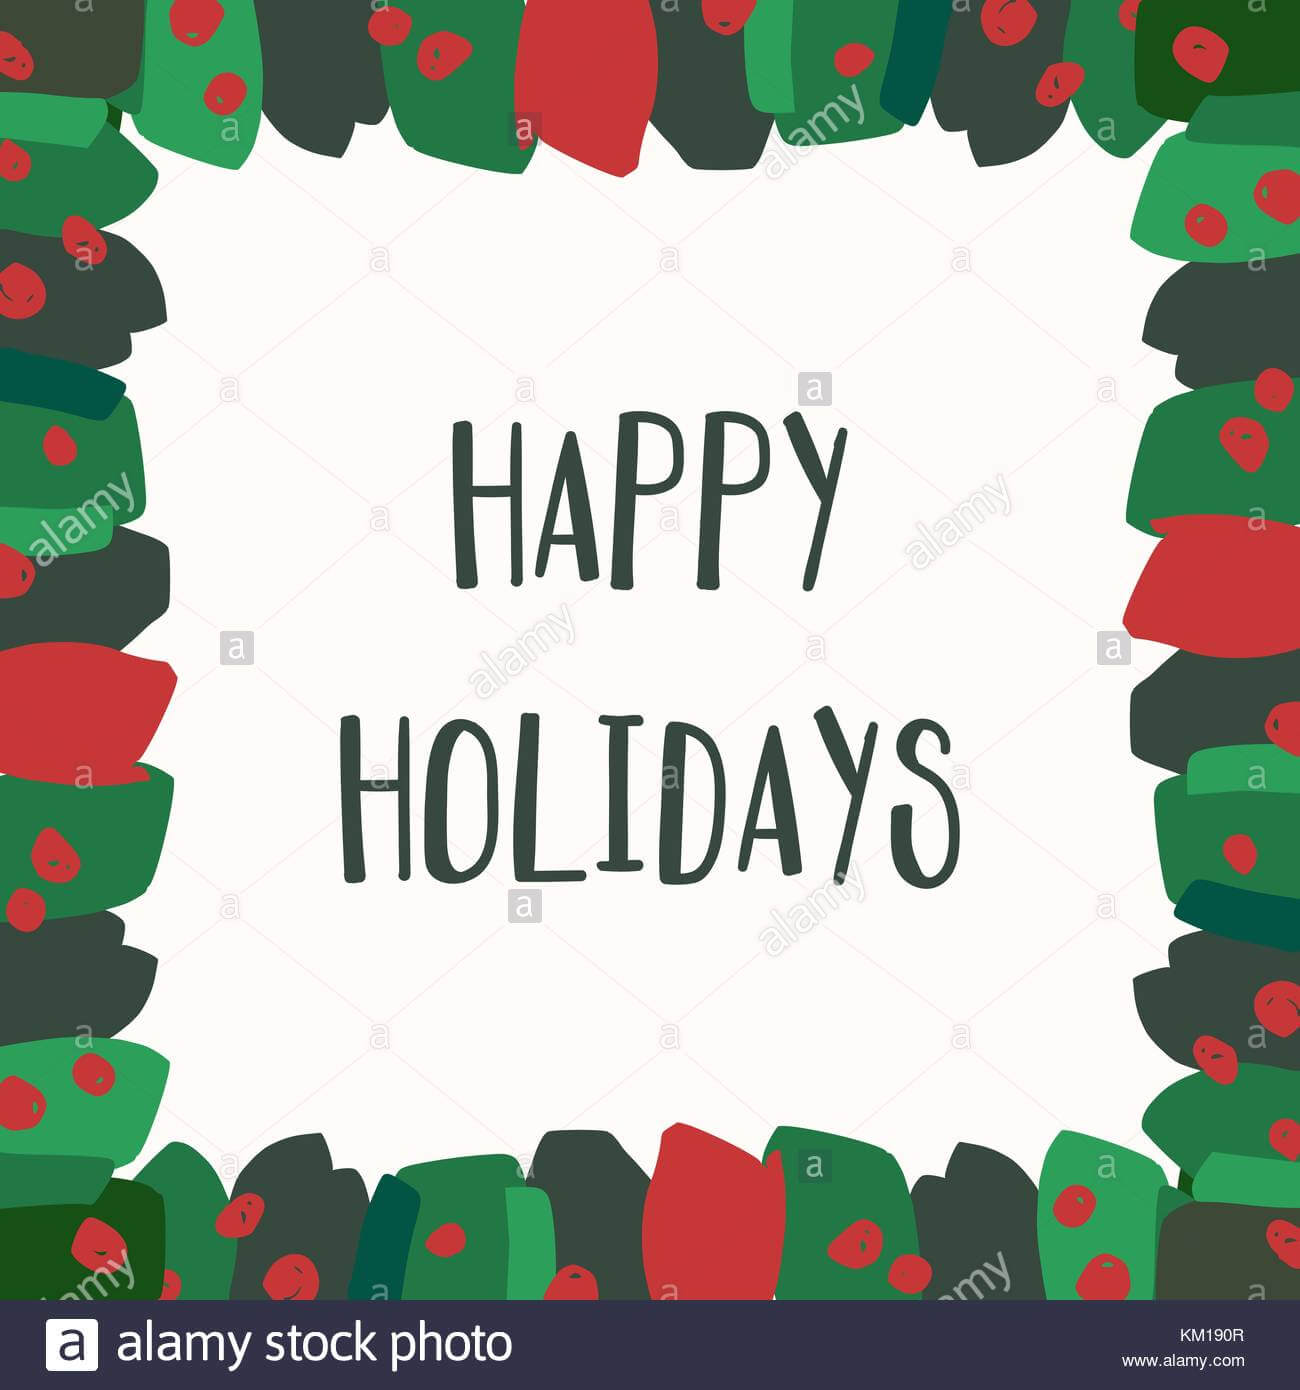 Christmas Greeting Card Template With Green And Red In Happy Holidays Card Template